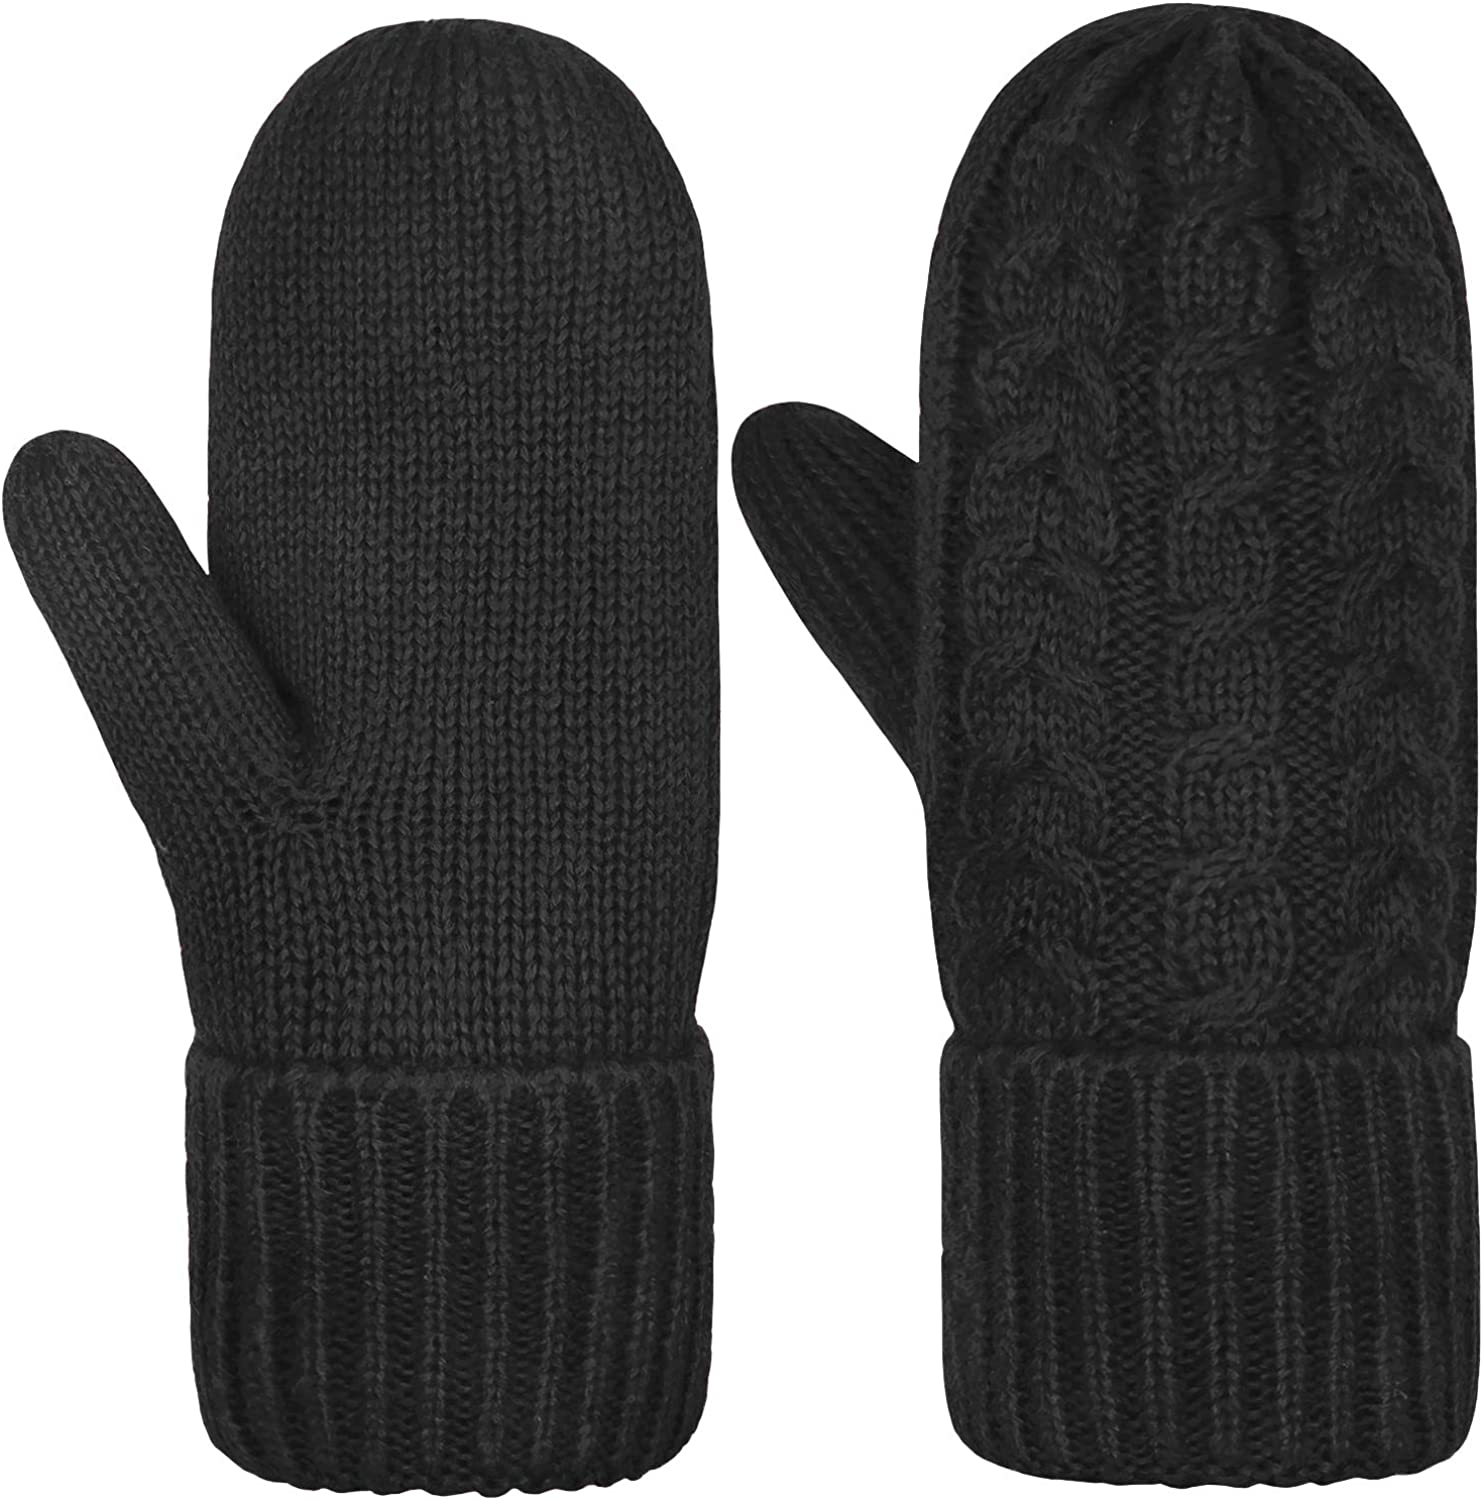 [2021 Newest] Women's Mittens Winter Thick Gloves- Warm Soft Lining Cozy Hand Warmer Cable Knit Glove Mitten for Women Girls